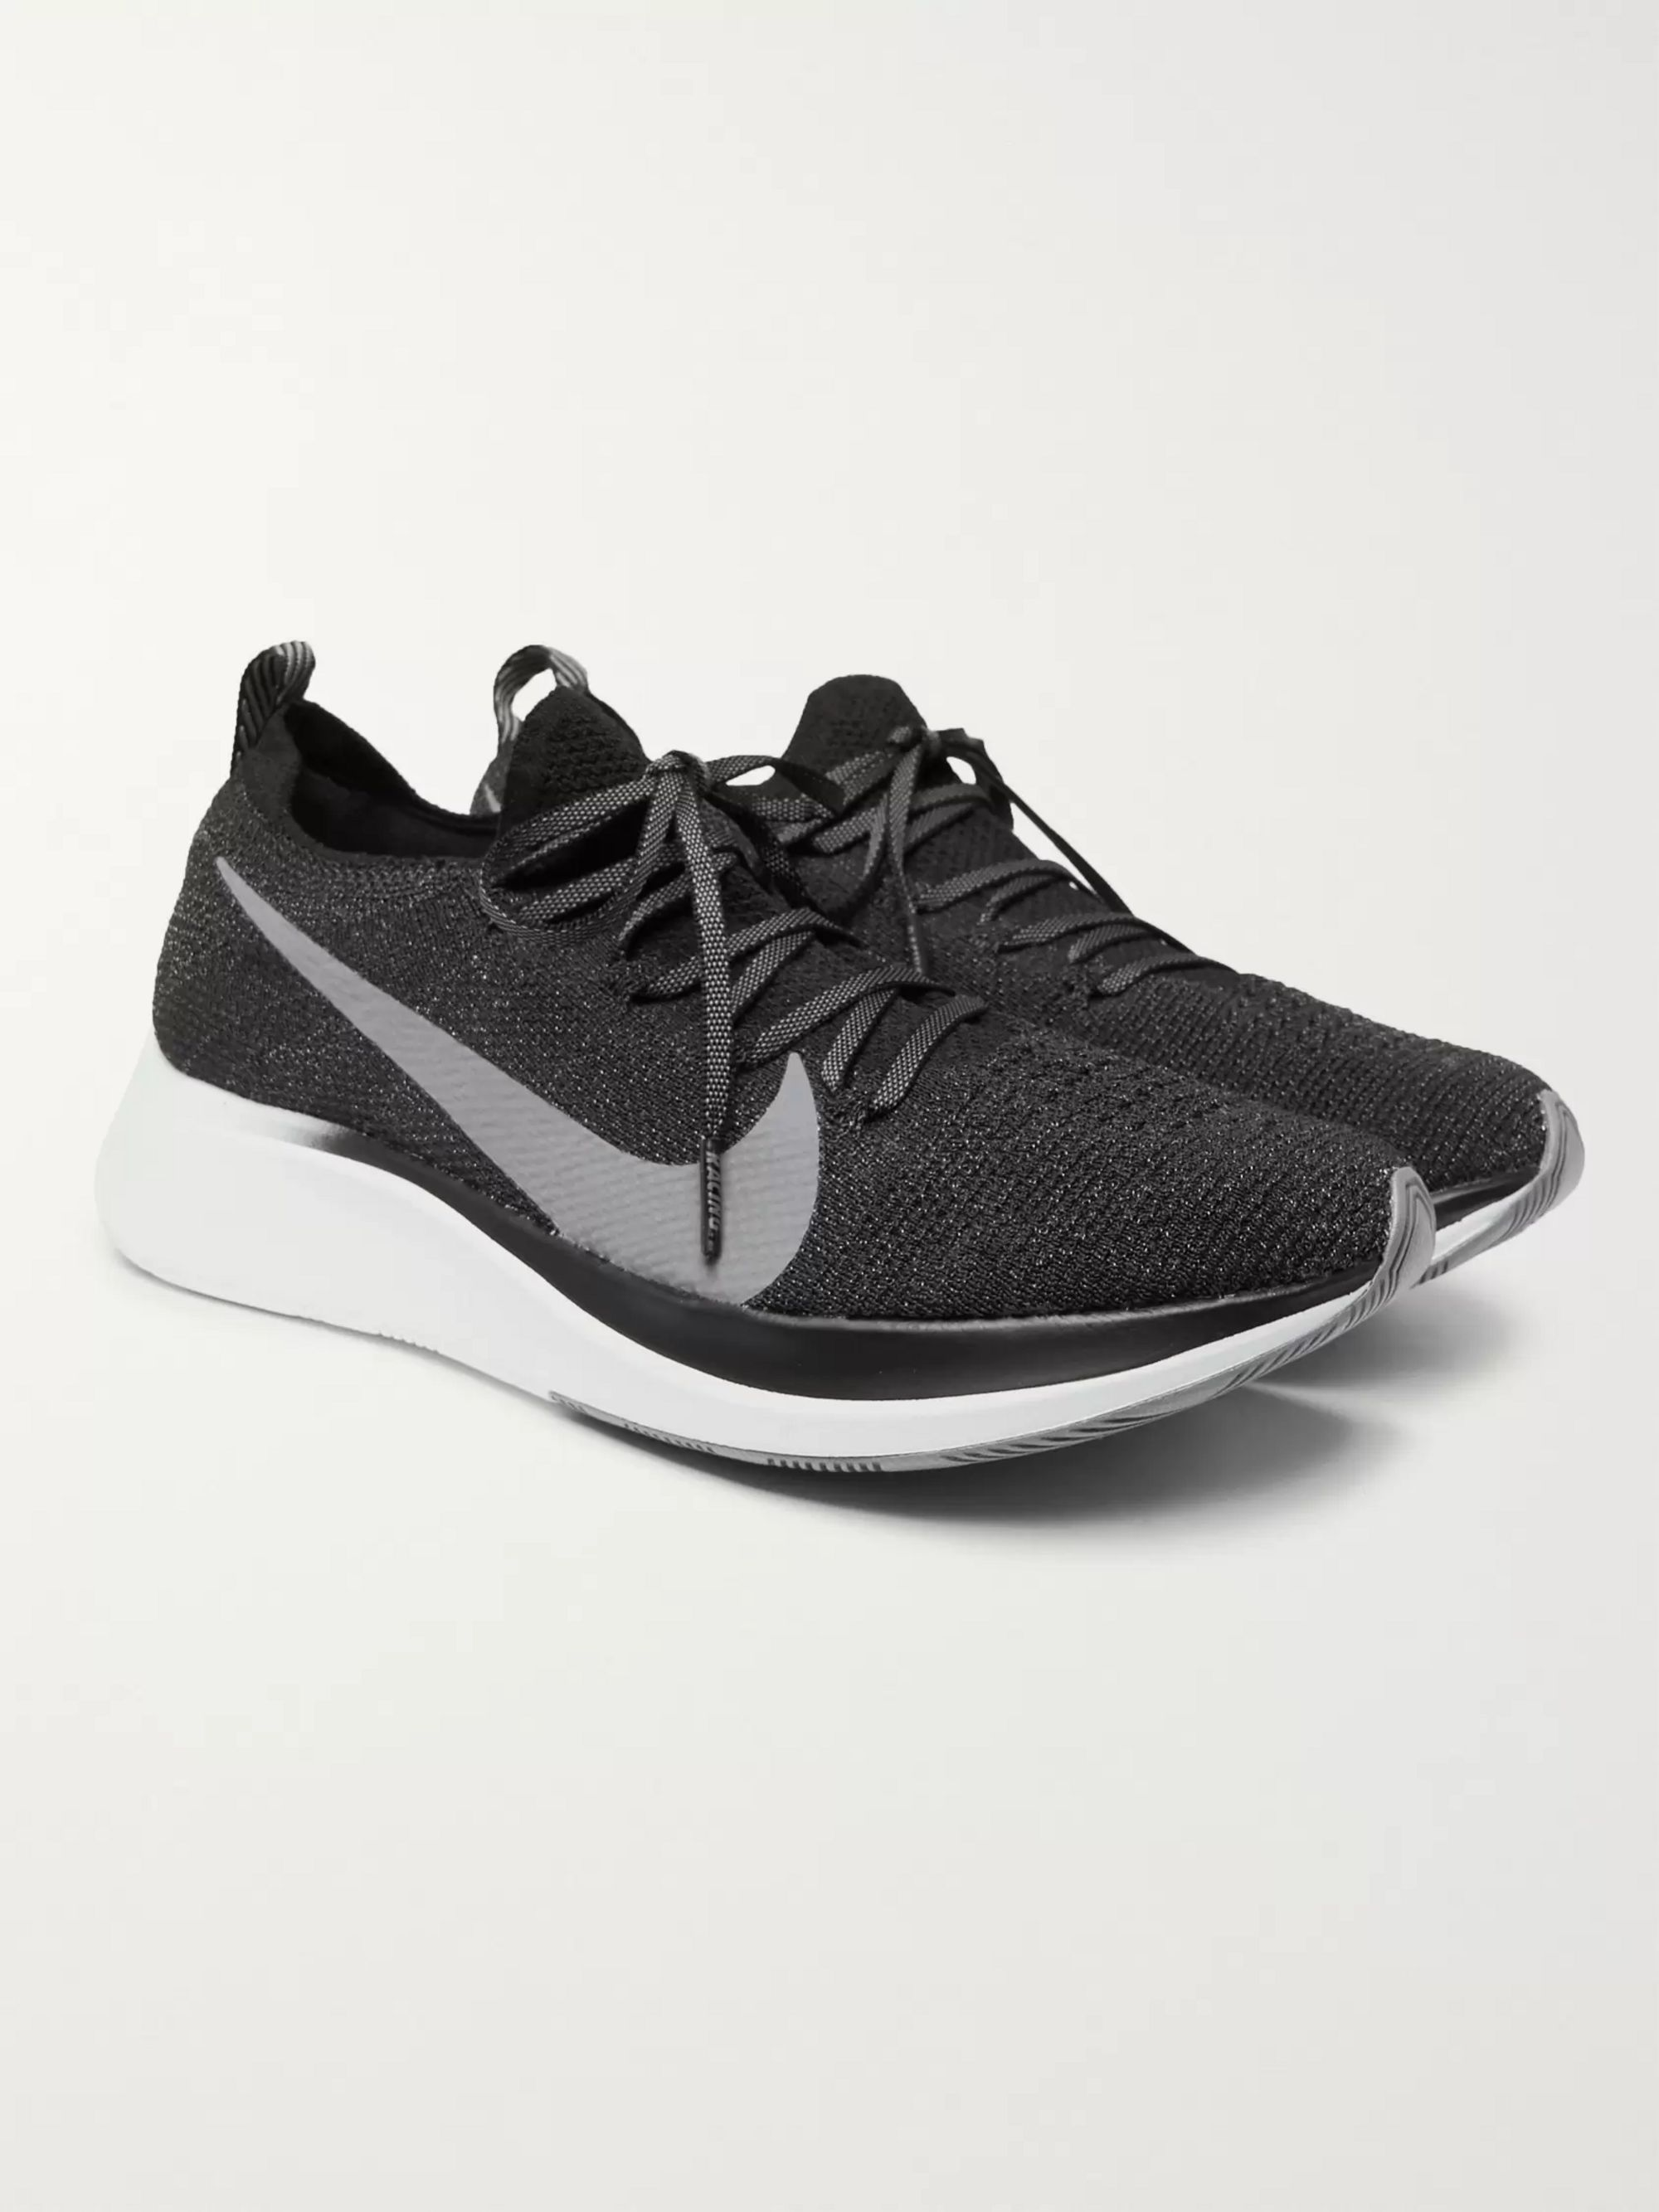 Nike Unveils the Zoom Fly Flyknit, Gets Updated with Carbon